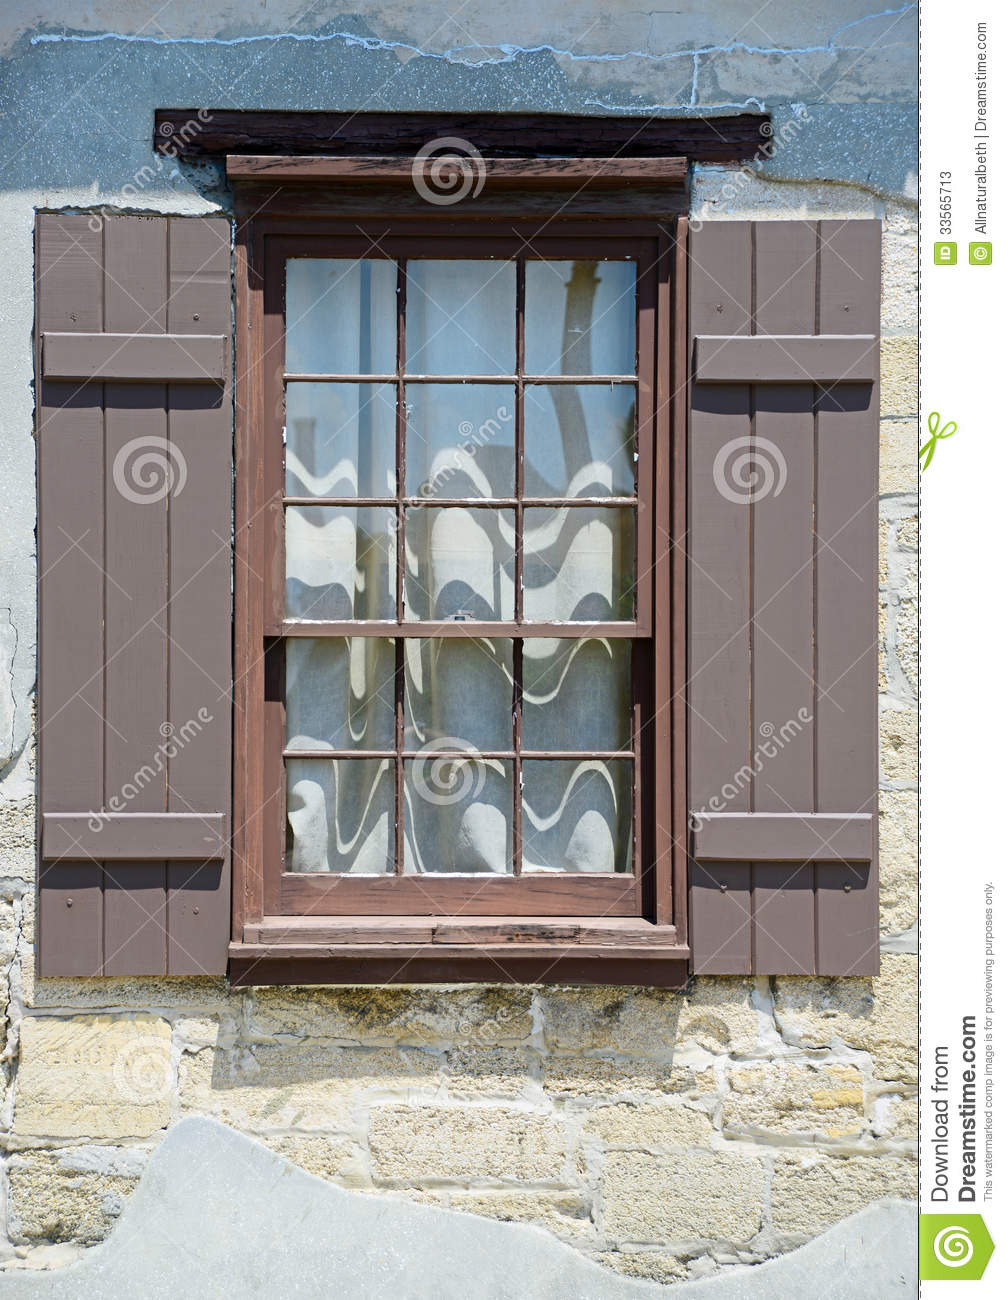 Window with shutters in medieval european village stock for European shutters